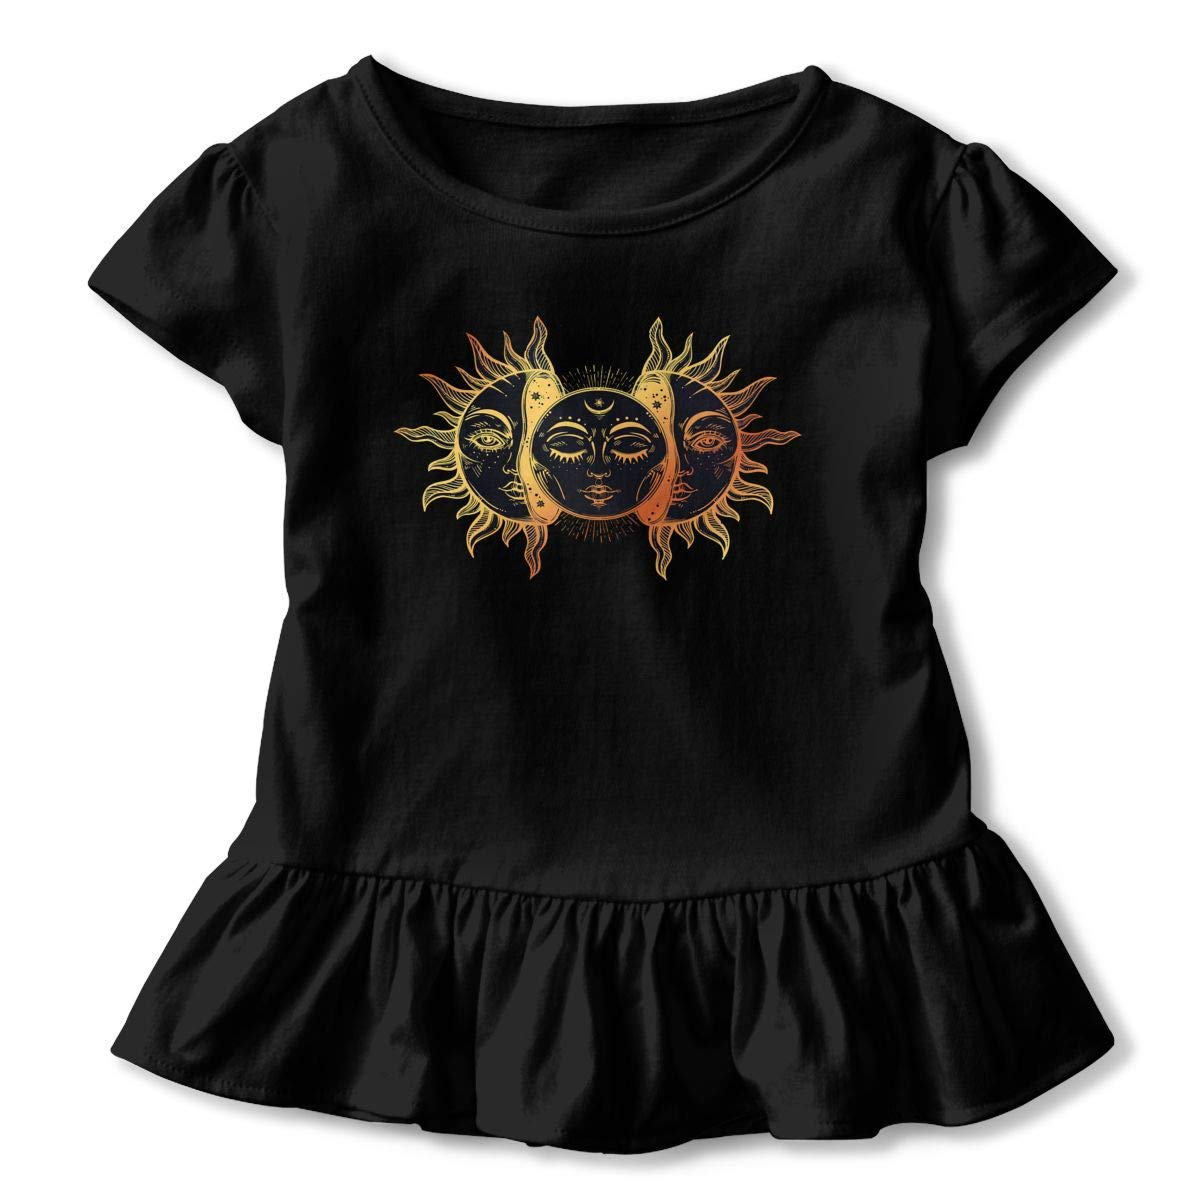 Celestial Moon and Sun with Faces Toddler Baby Girls Short Sleeve ONeck Basic Shirts with Printed Designs in Front for School Birthday Party Gifts Ruffles Top Black